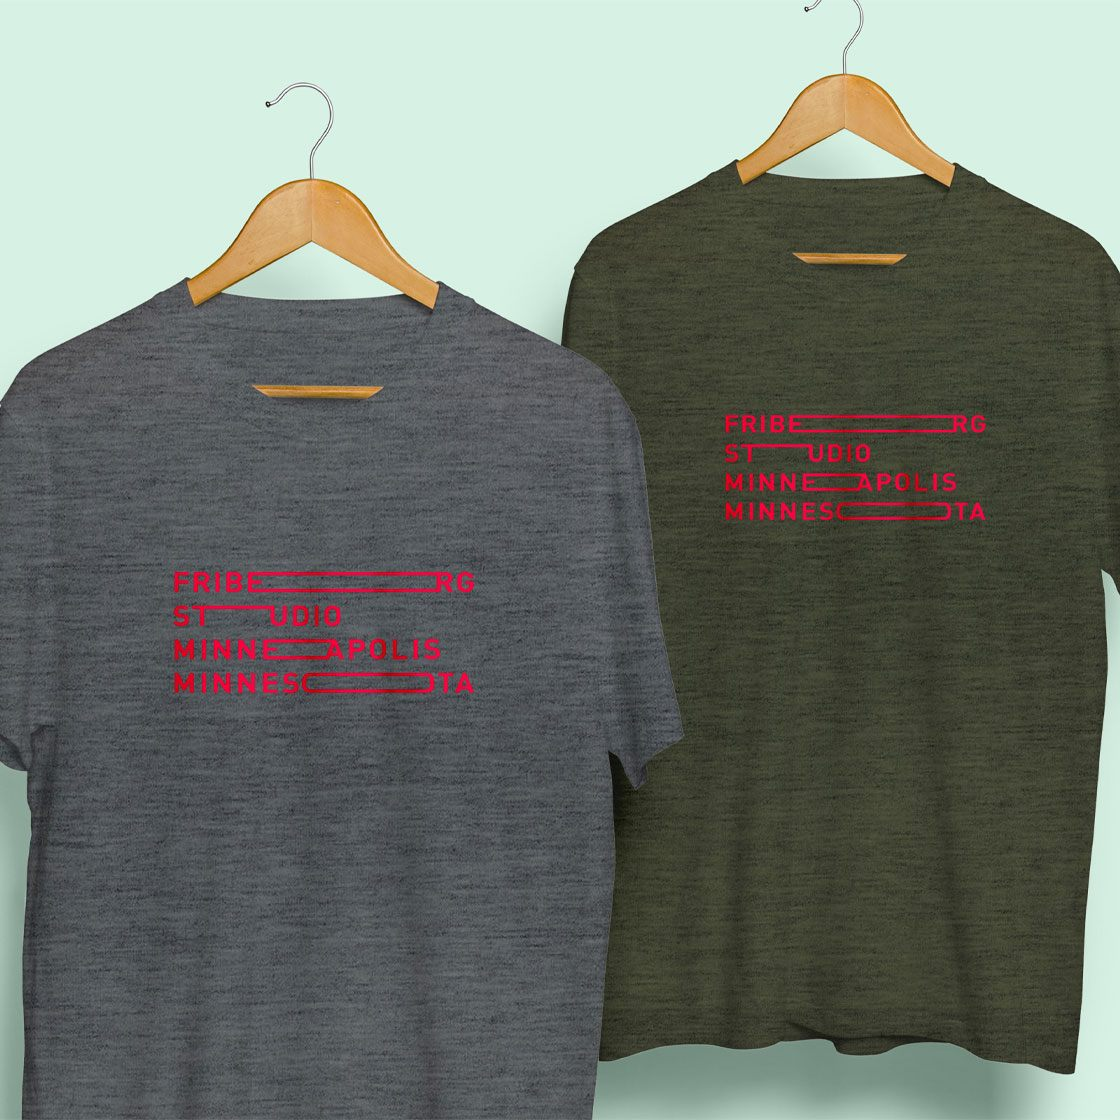 Screen printed t shirts with ken friburg logo